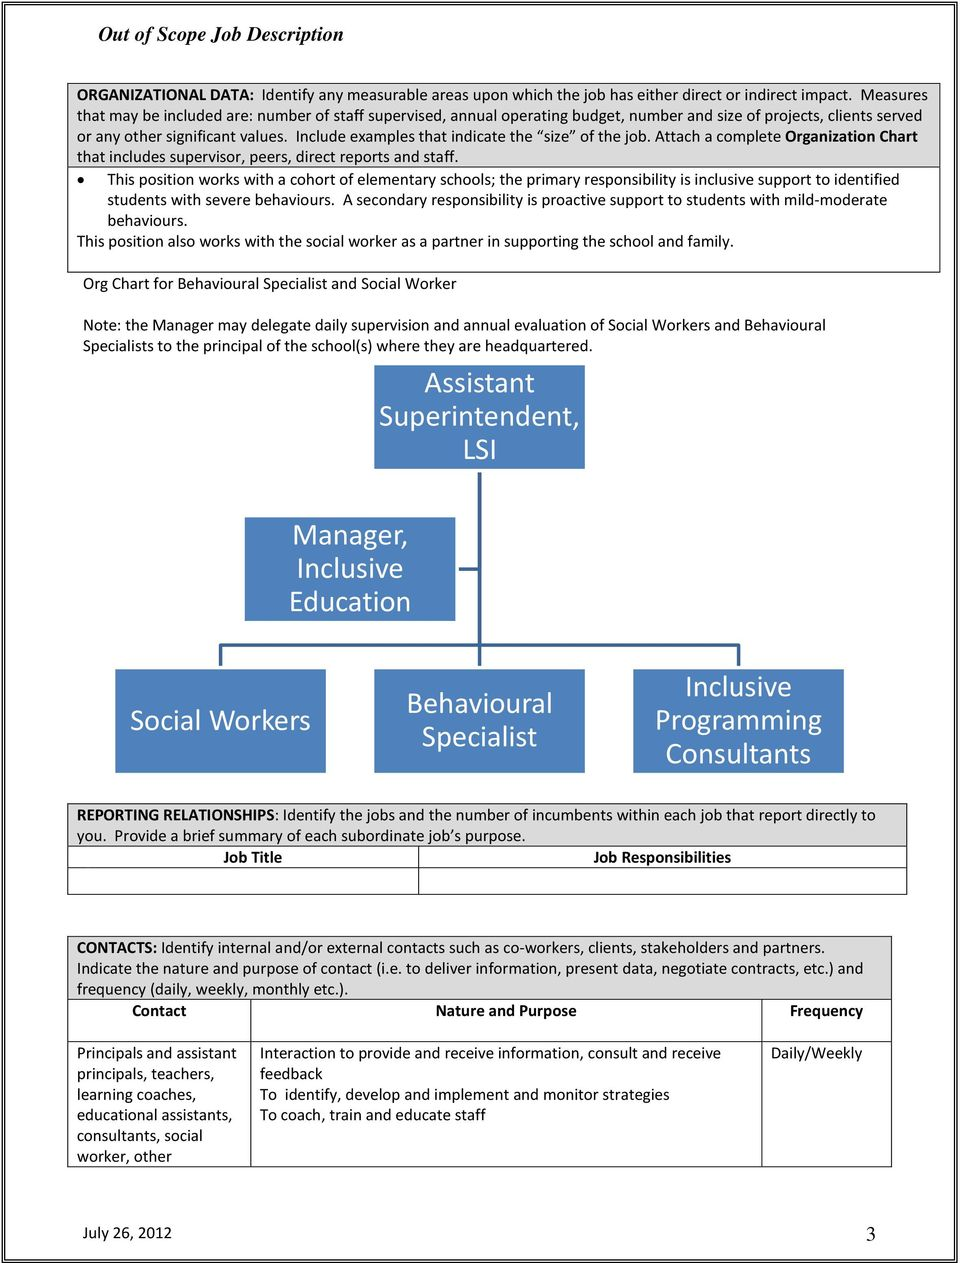 Include examples that indicate the size of the job. Attach a complete Organization Chart that includes supervisor, peers, direct reports and staff.